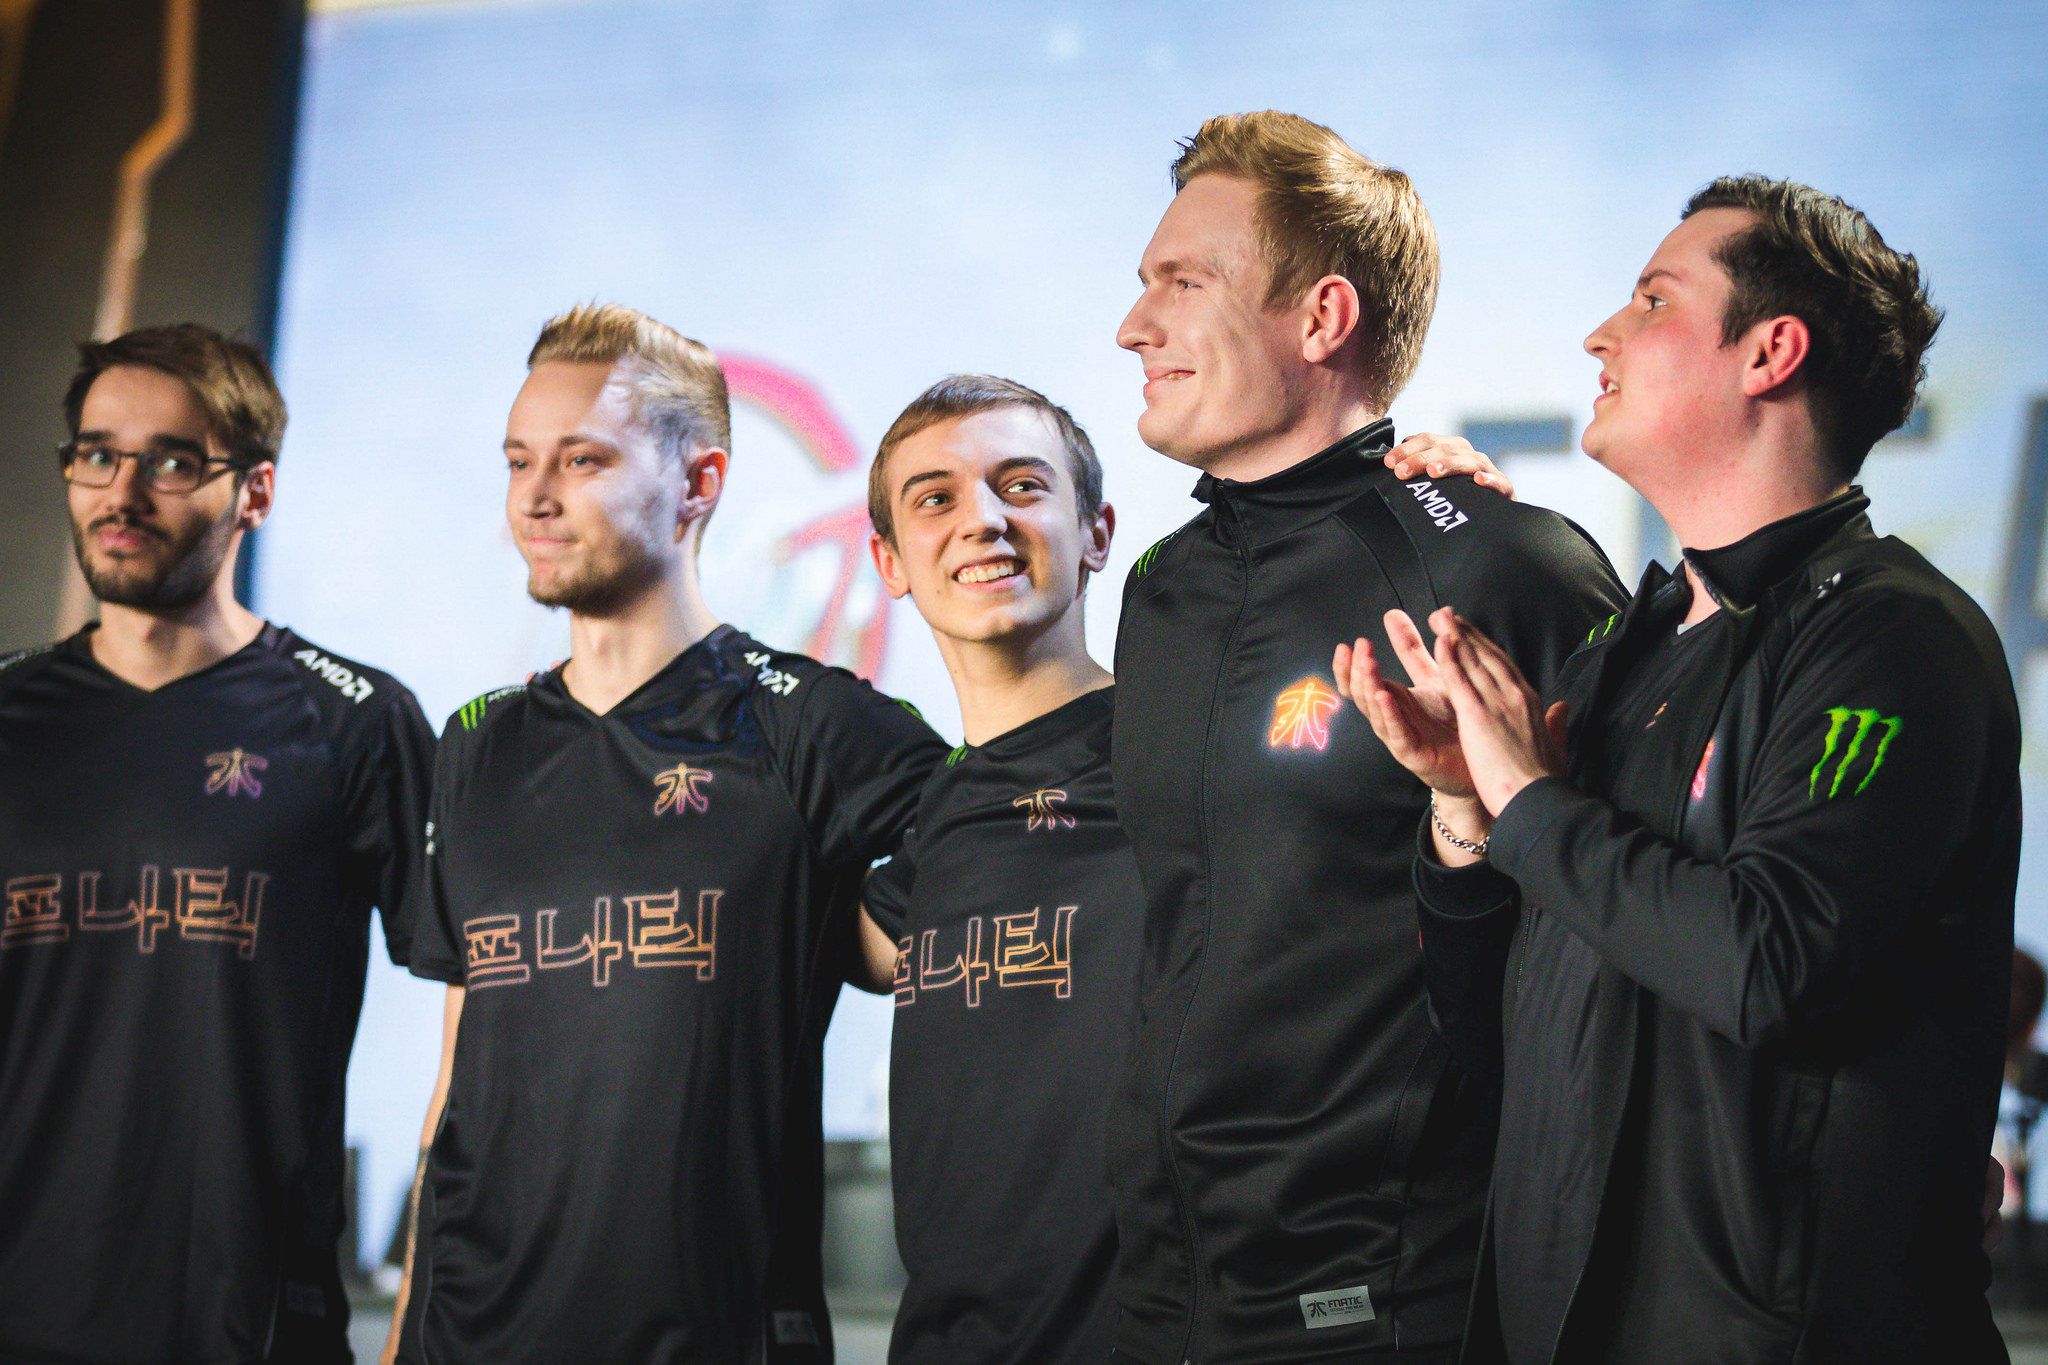 64a1e23df Invictus Gaming beat Fnatic in Worlds 2018 Finals · SickOdds